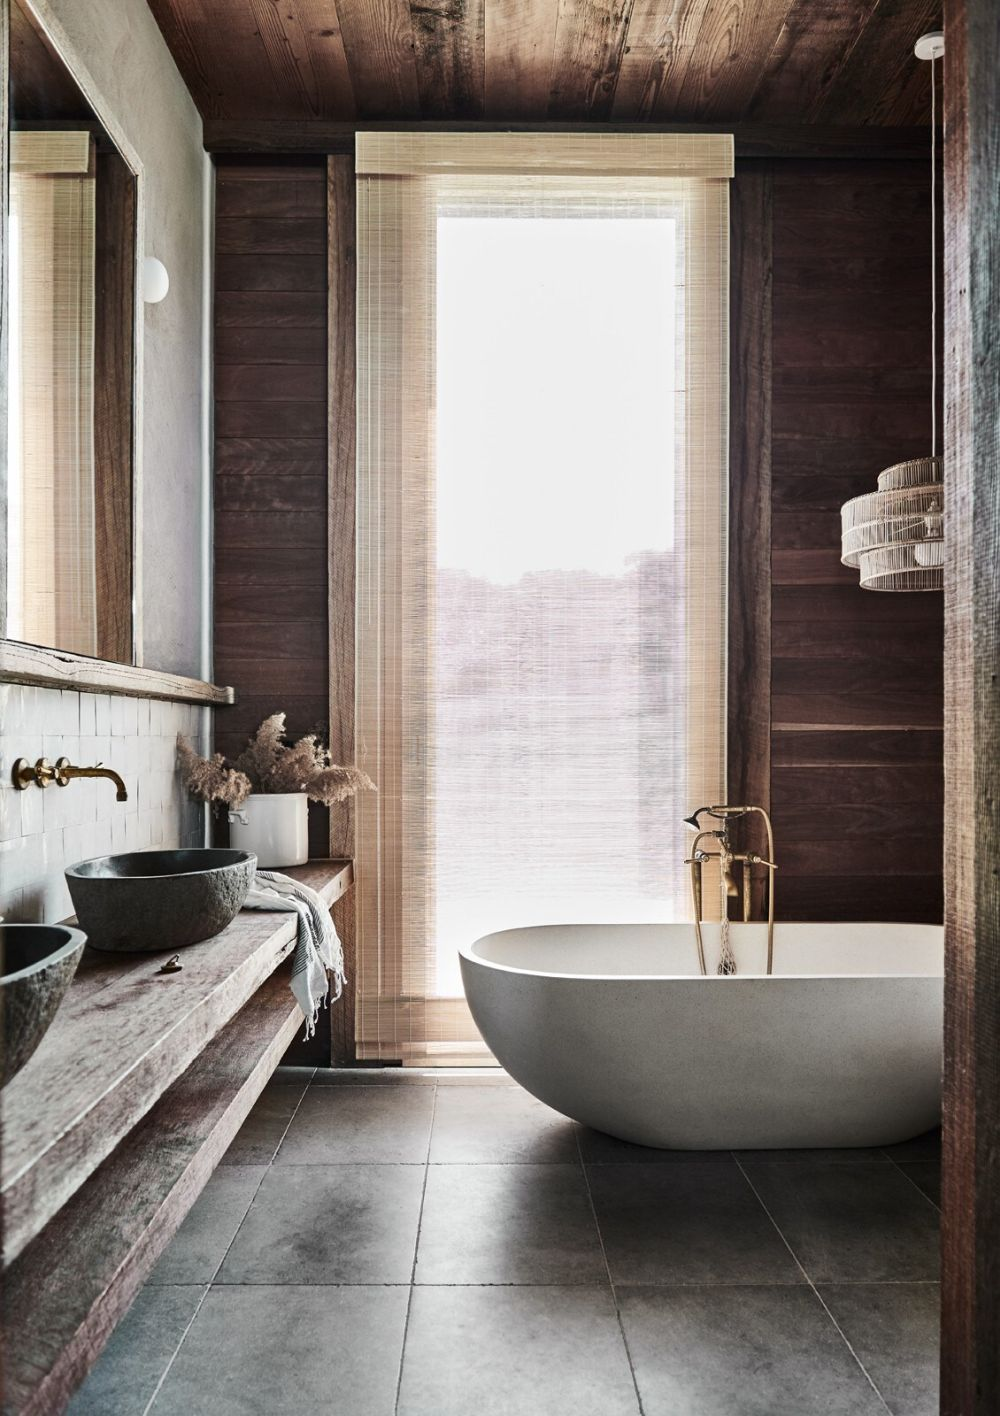 The bathrooms are simple and at the same time very stylish and sophisticated while respecting the rustic design